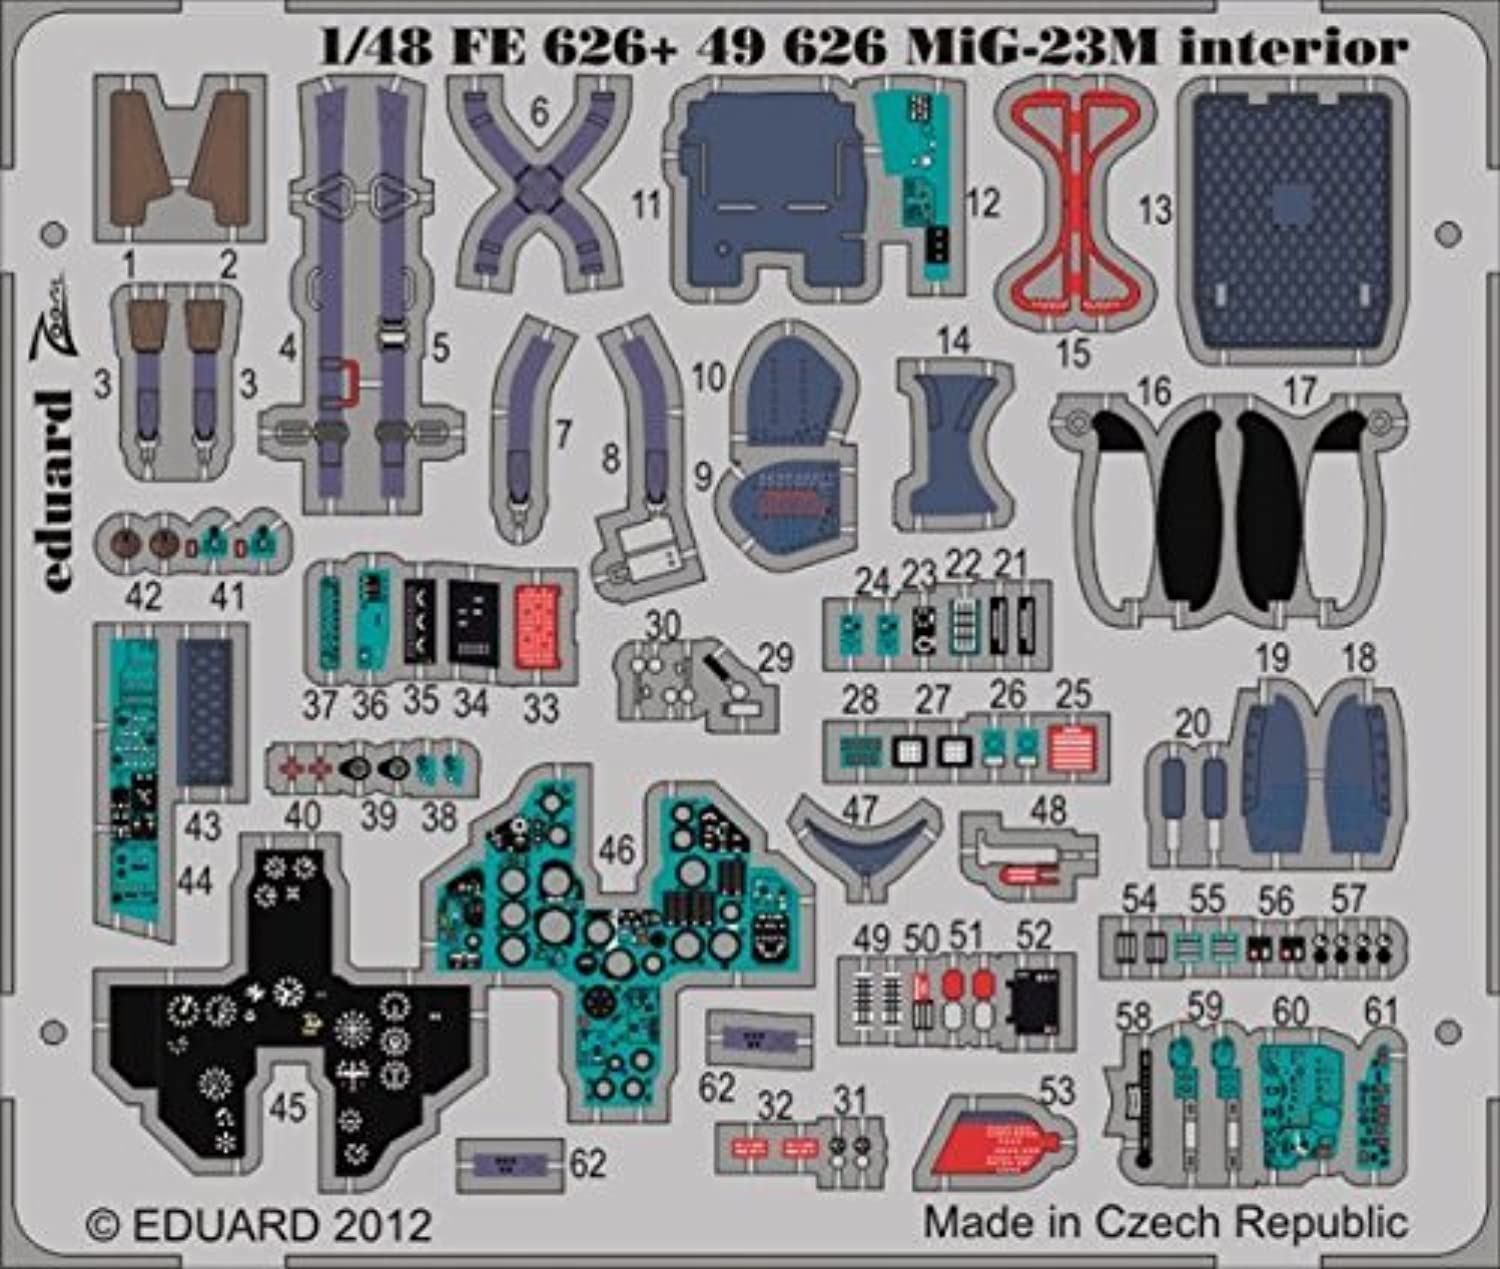 EDU49626 1 48 Eduard Farbe Photo Etch Detail Set for the 1 48 Trumpeter MiG-23M Flogger model kit by Eduard